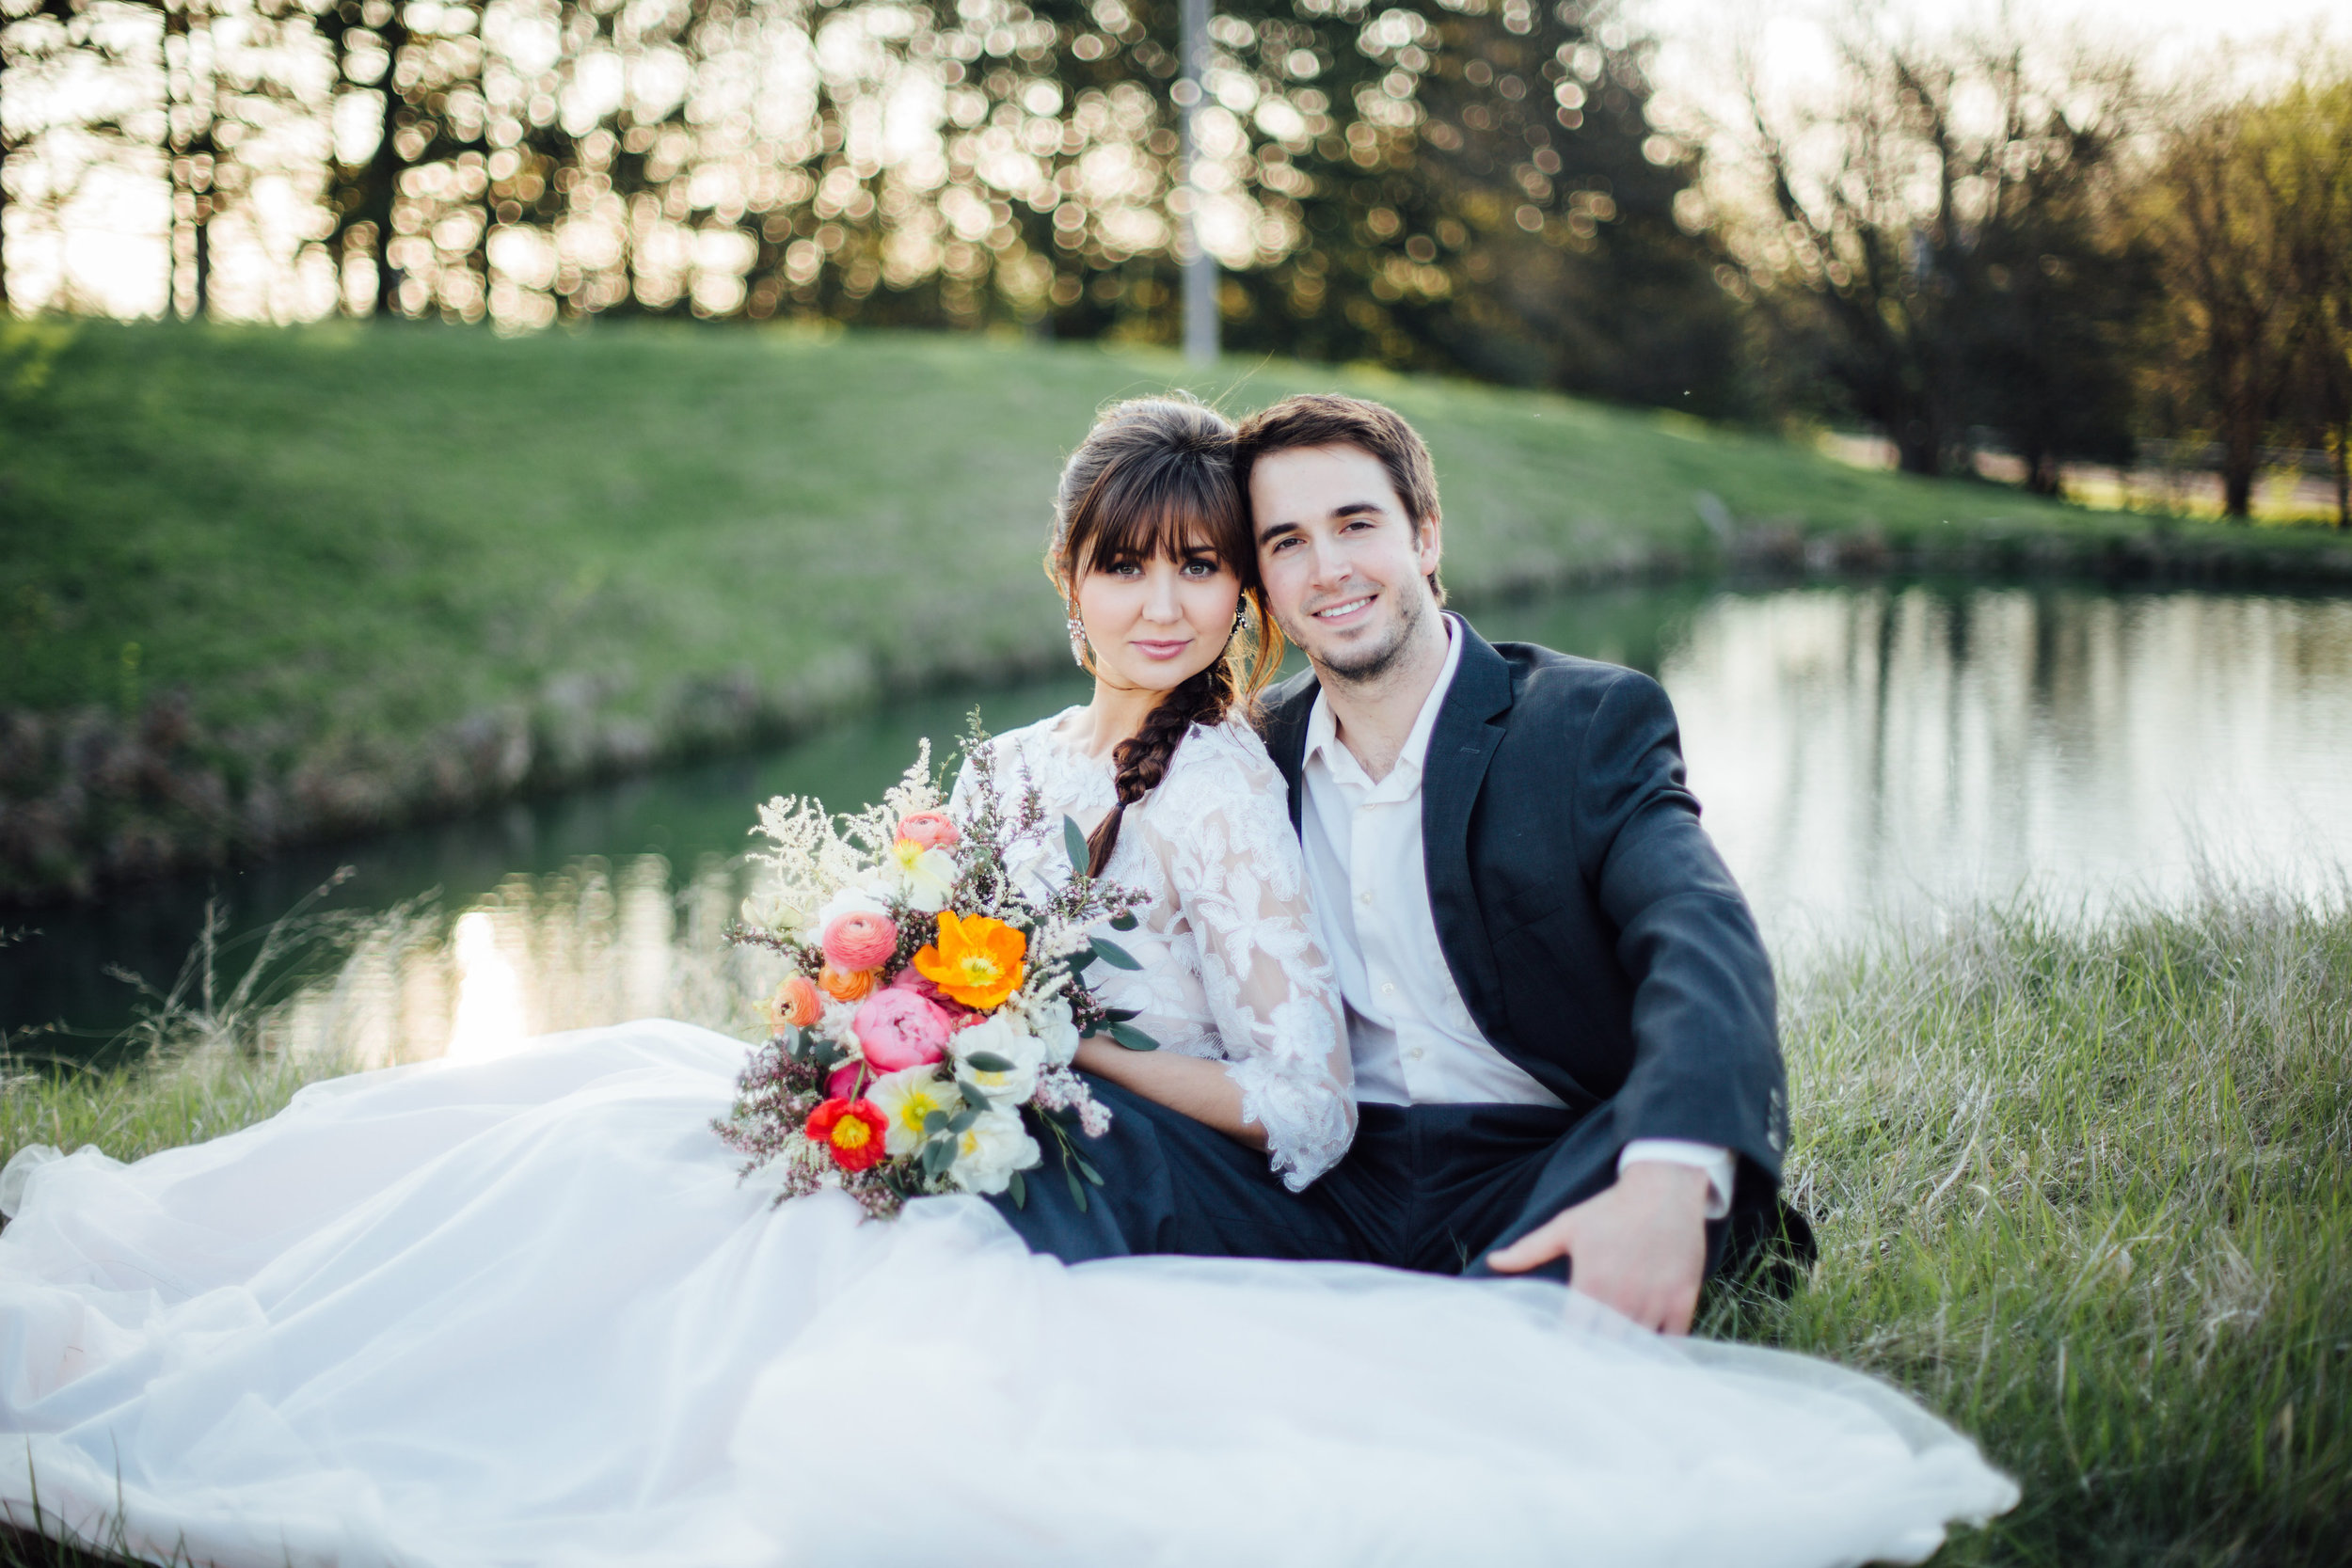 Lamb Styled Shoot with Danielle Stewart Photography, Splendor of Eden and Something Old Event Rentals